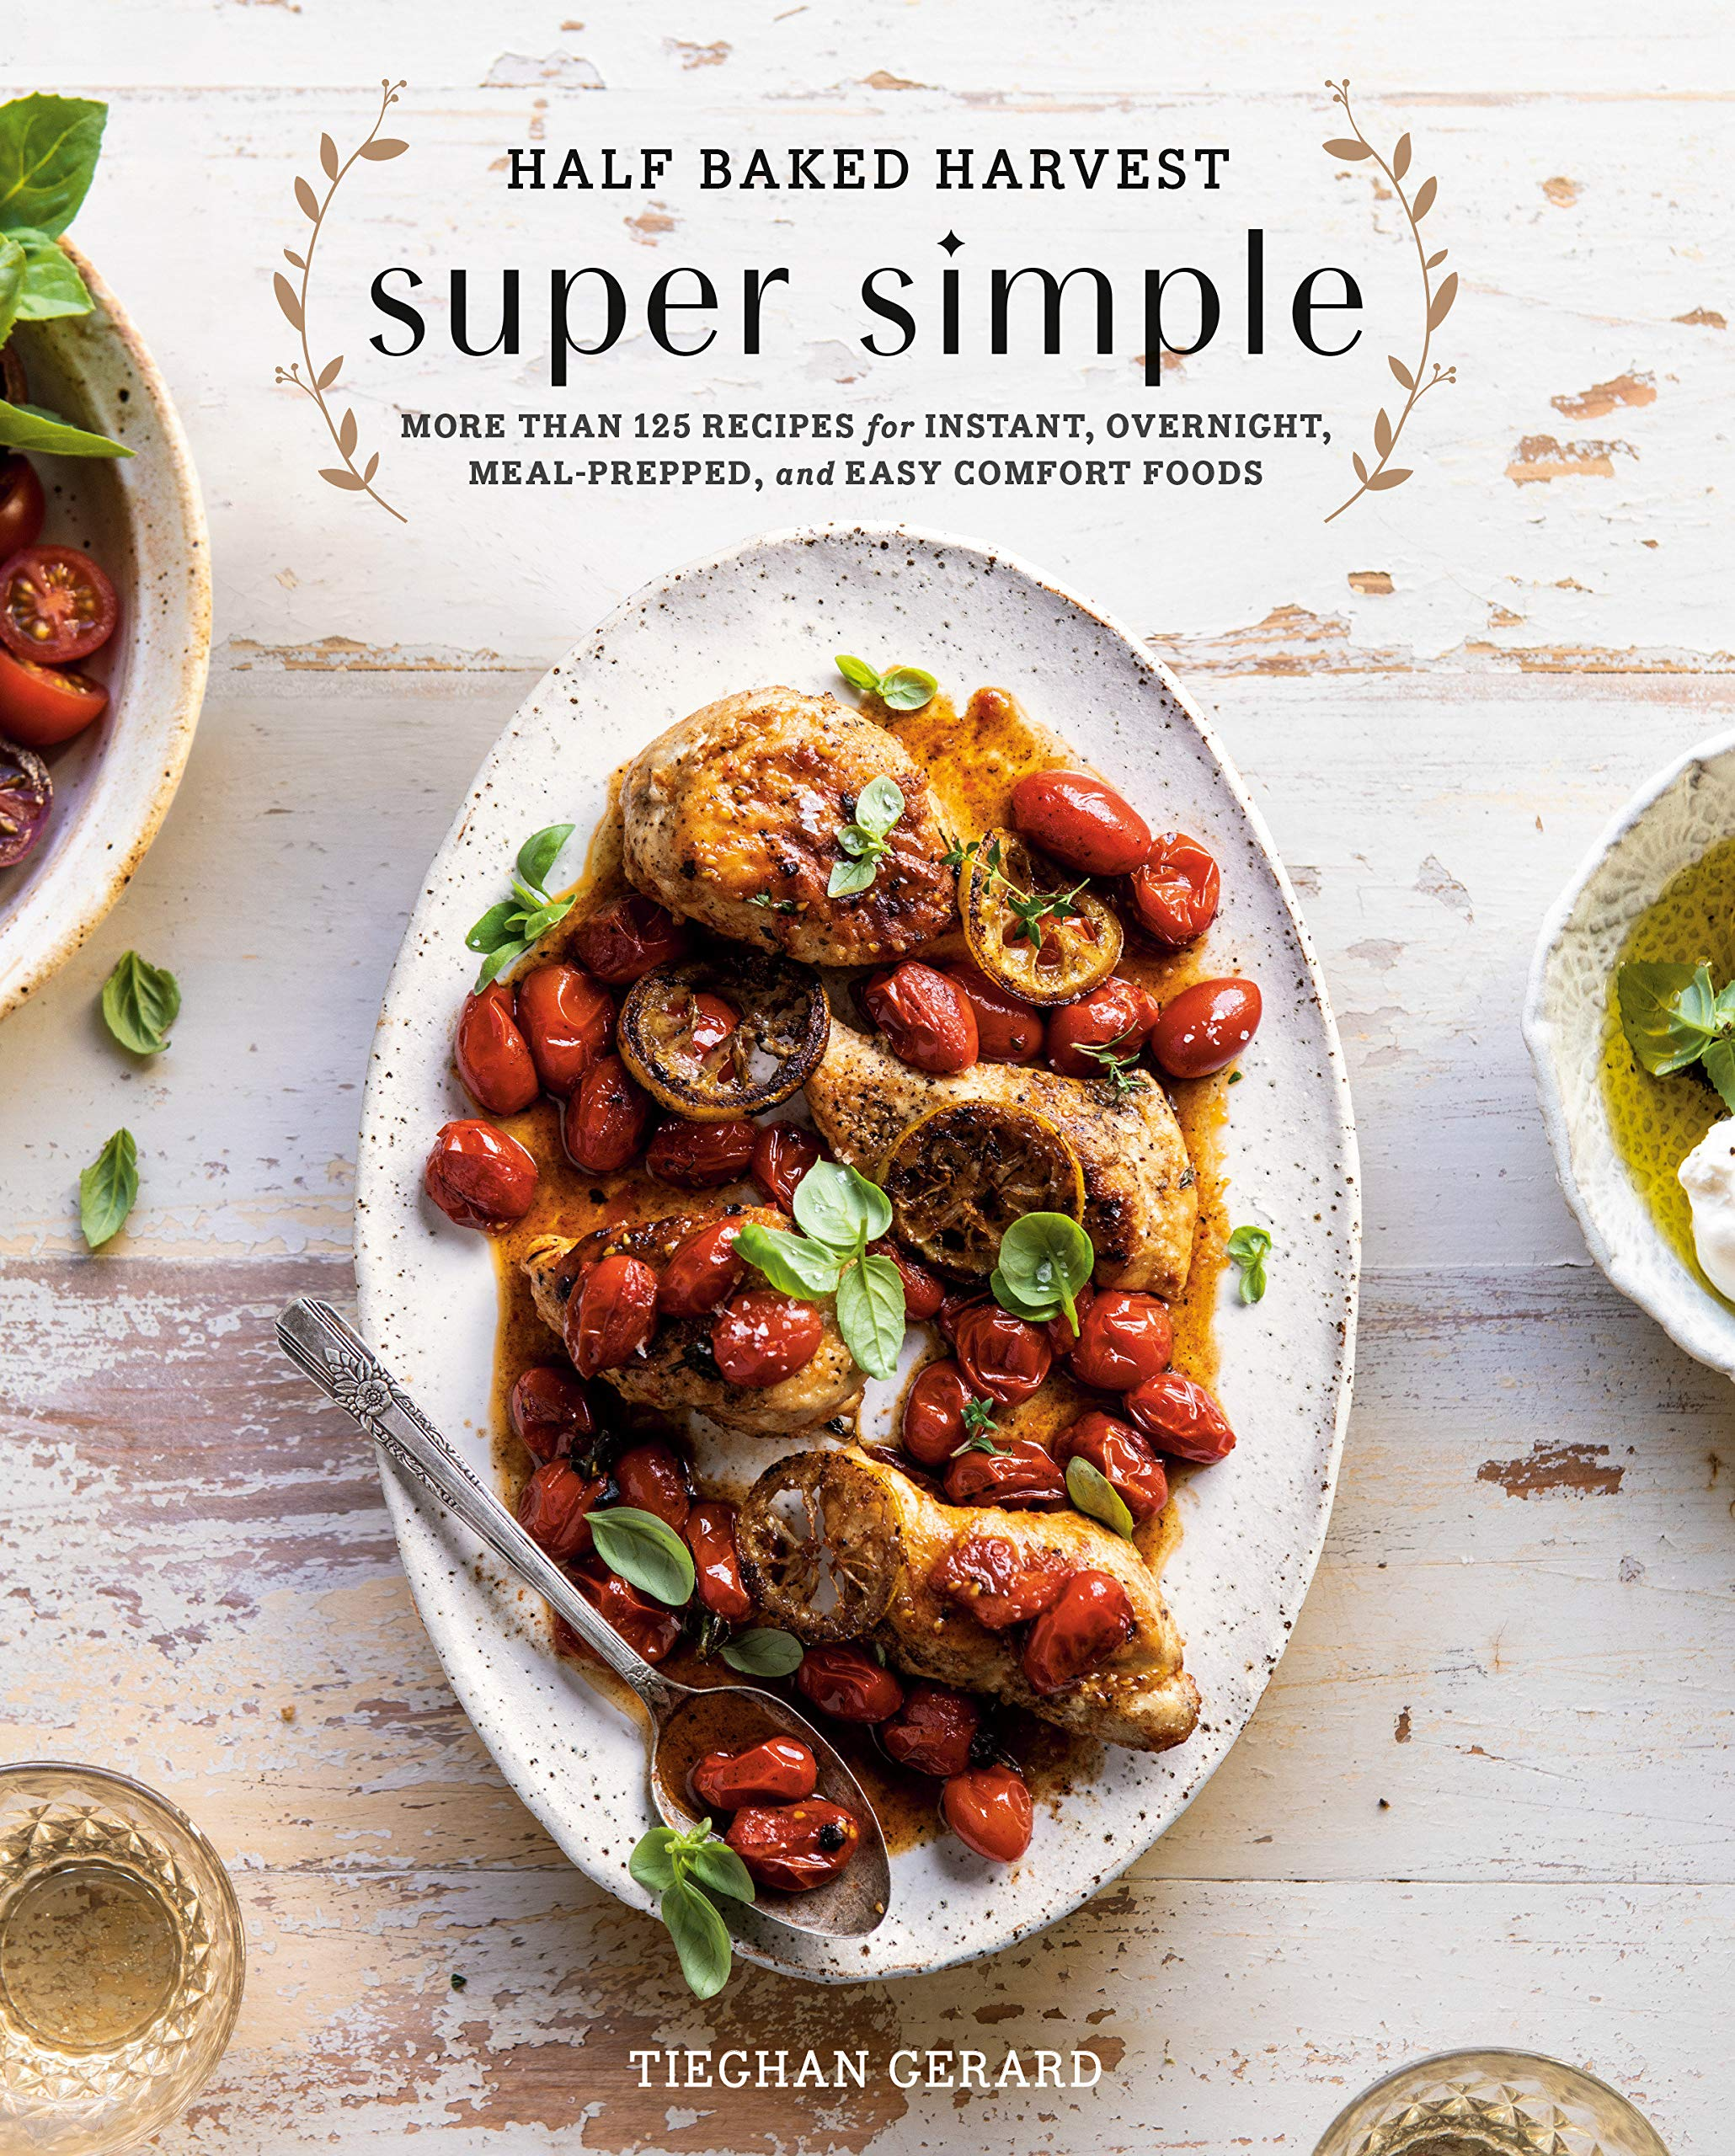 Half Baked Harvest Super Simple: More Than 125 Recipes for Instant, Overnight, Meal-Prepped, and Easy Comfort Foods: A Cookbook WeeklyReviewer